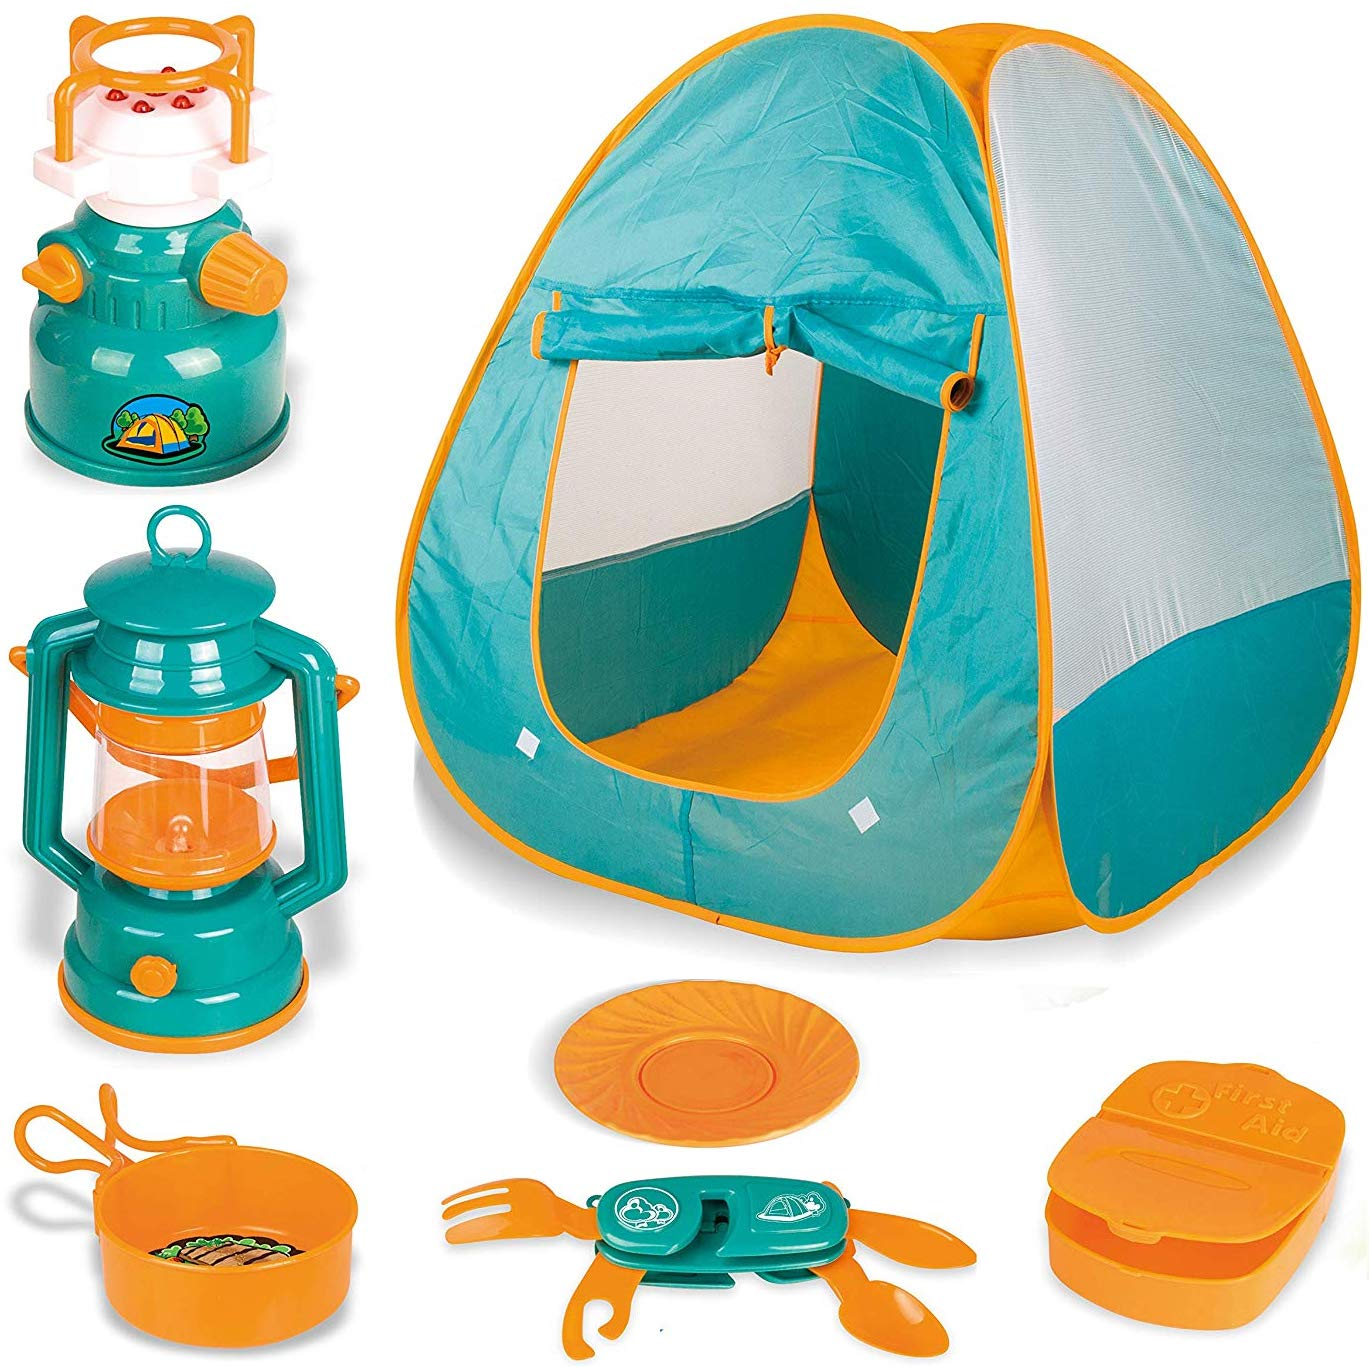 Little Explorers Kids Pop Up Play Tent with Camping Gear Outdoor Toy Tools Set (7 Pieces) by Liberty Imports